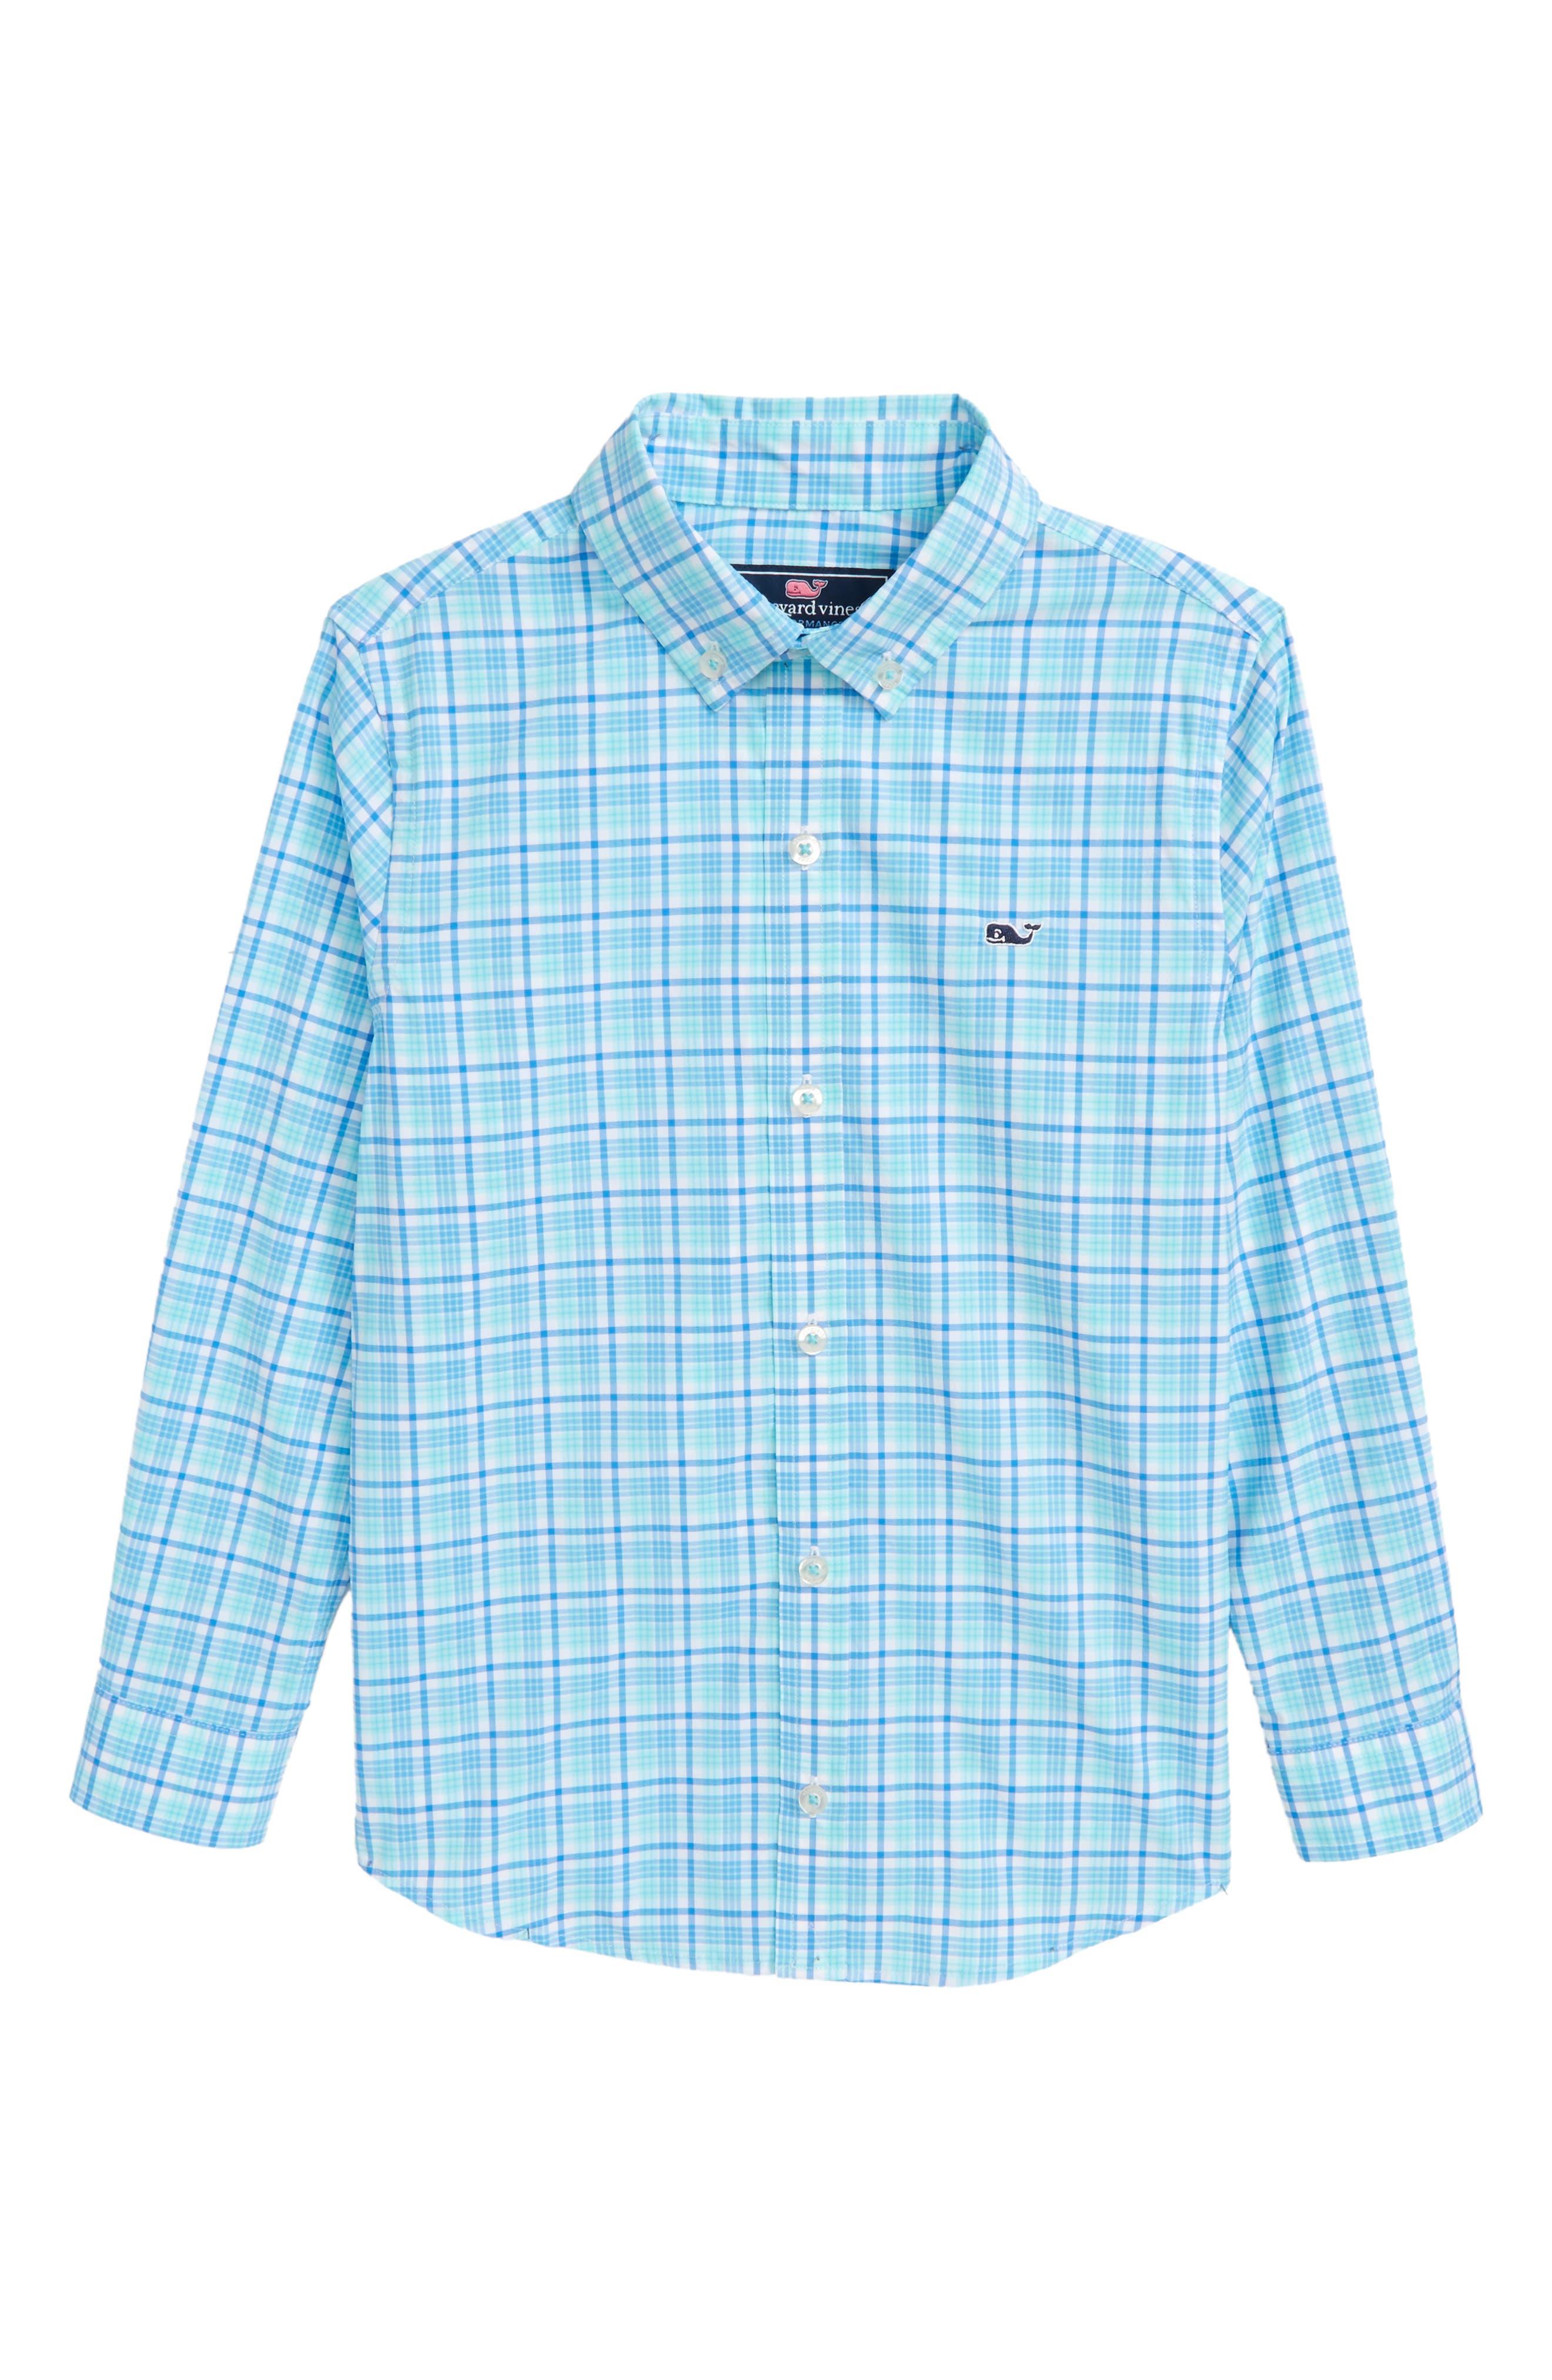 vineyard vines Marsh Harbor Plaid Woven Shirt (Toddler Boys, Little Boys & Big Boys)